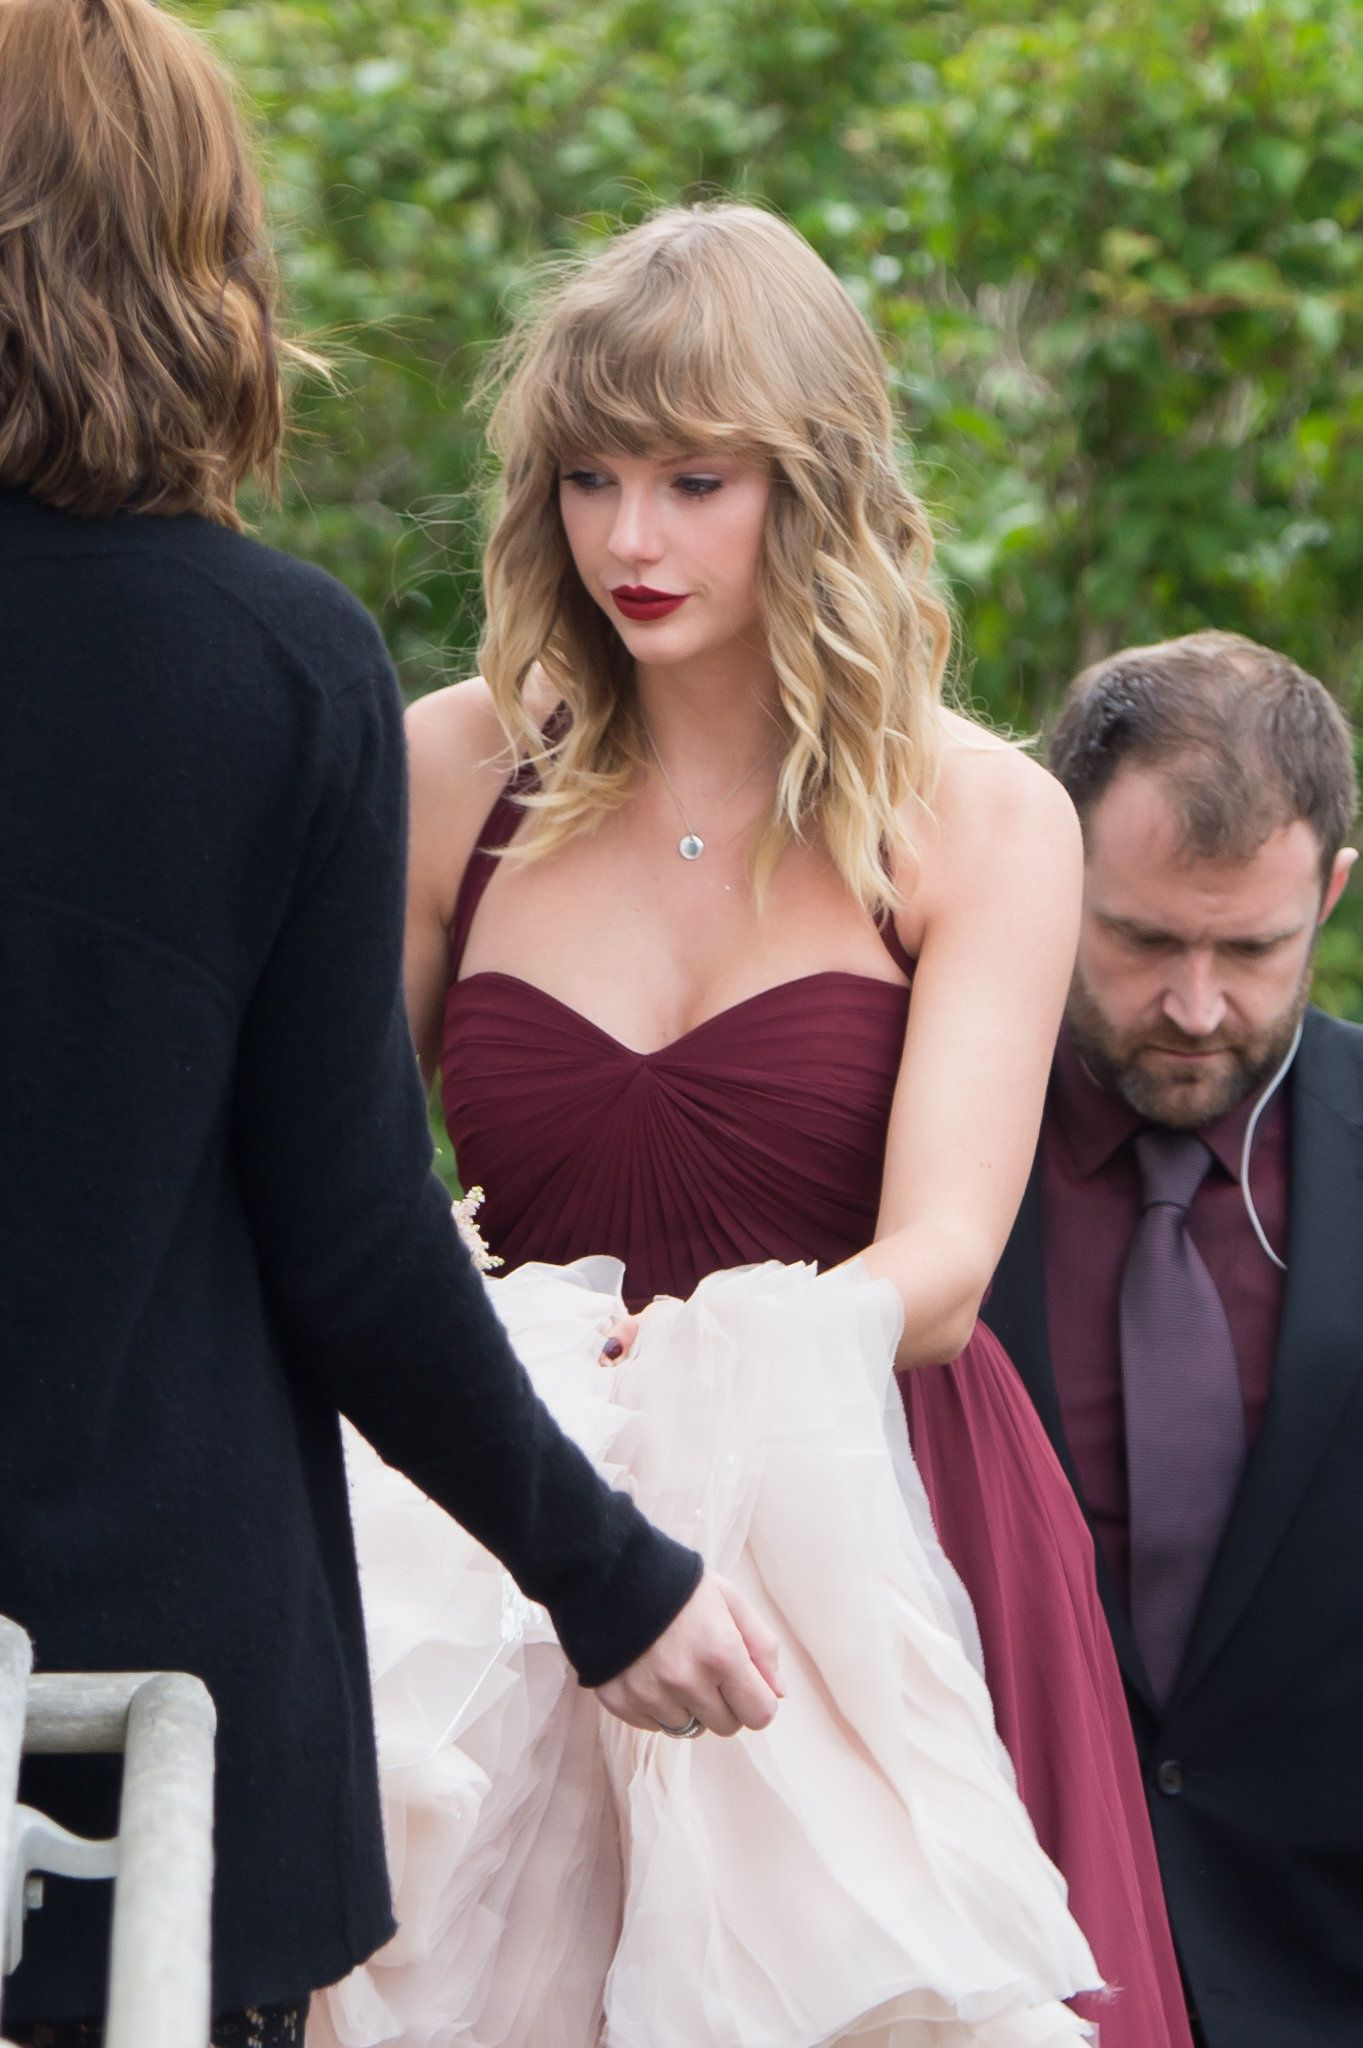 Taylor Swift is seen carrying the back of her BFF Abigail's wedding dress as they arrive at a church in Martha's Vineyard.